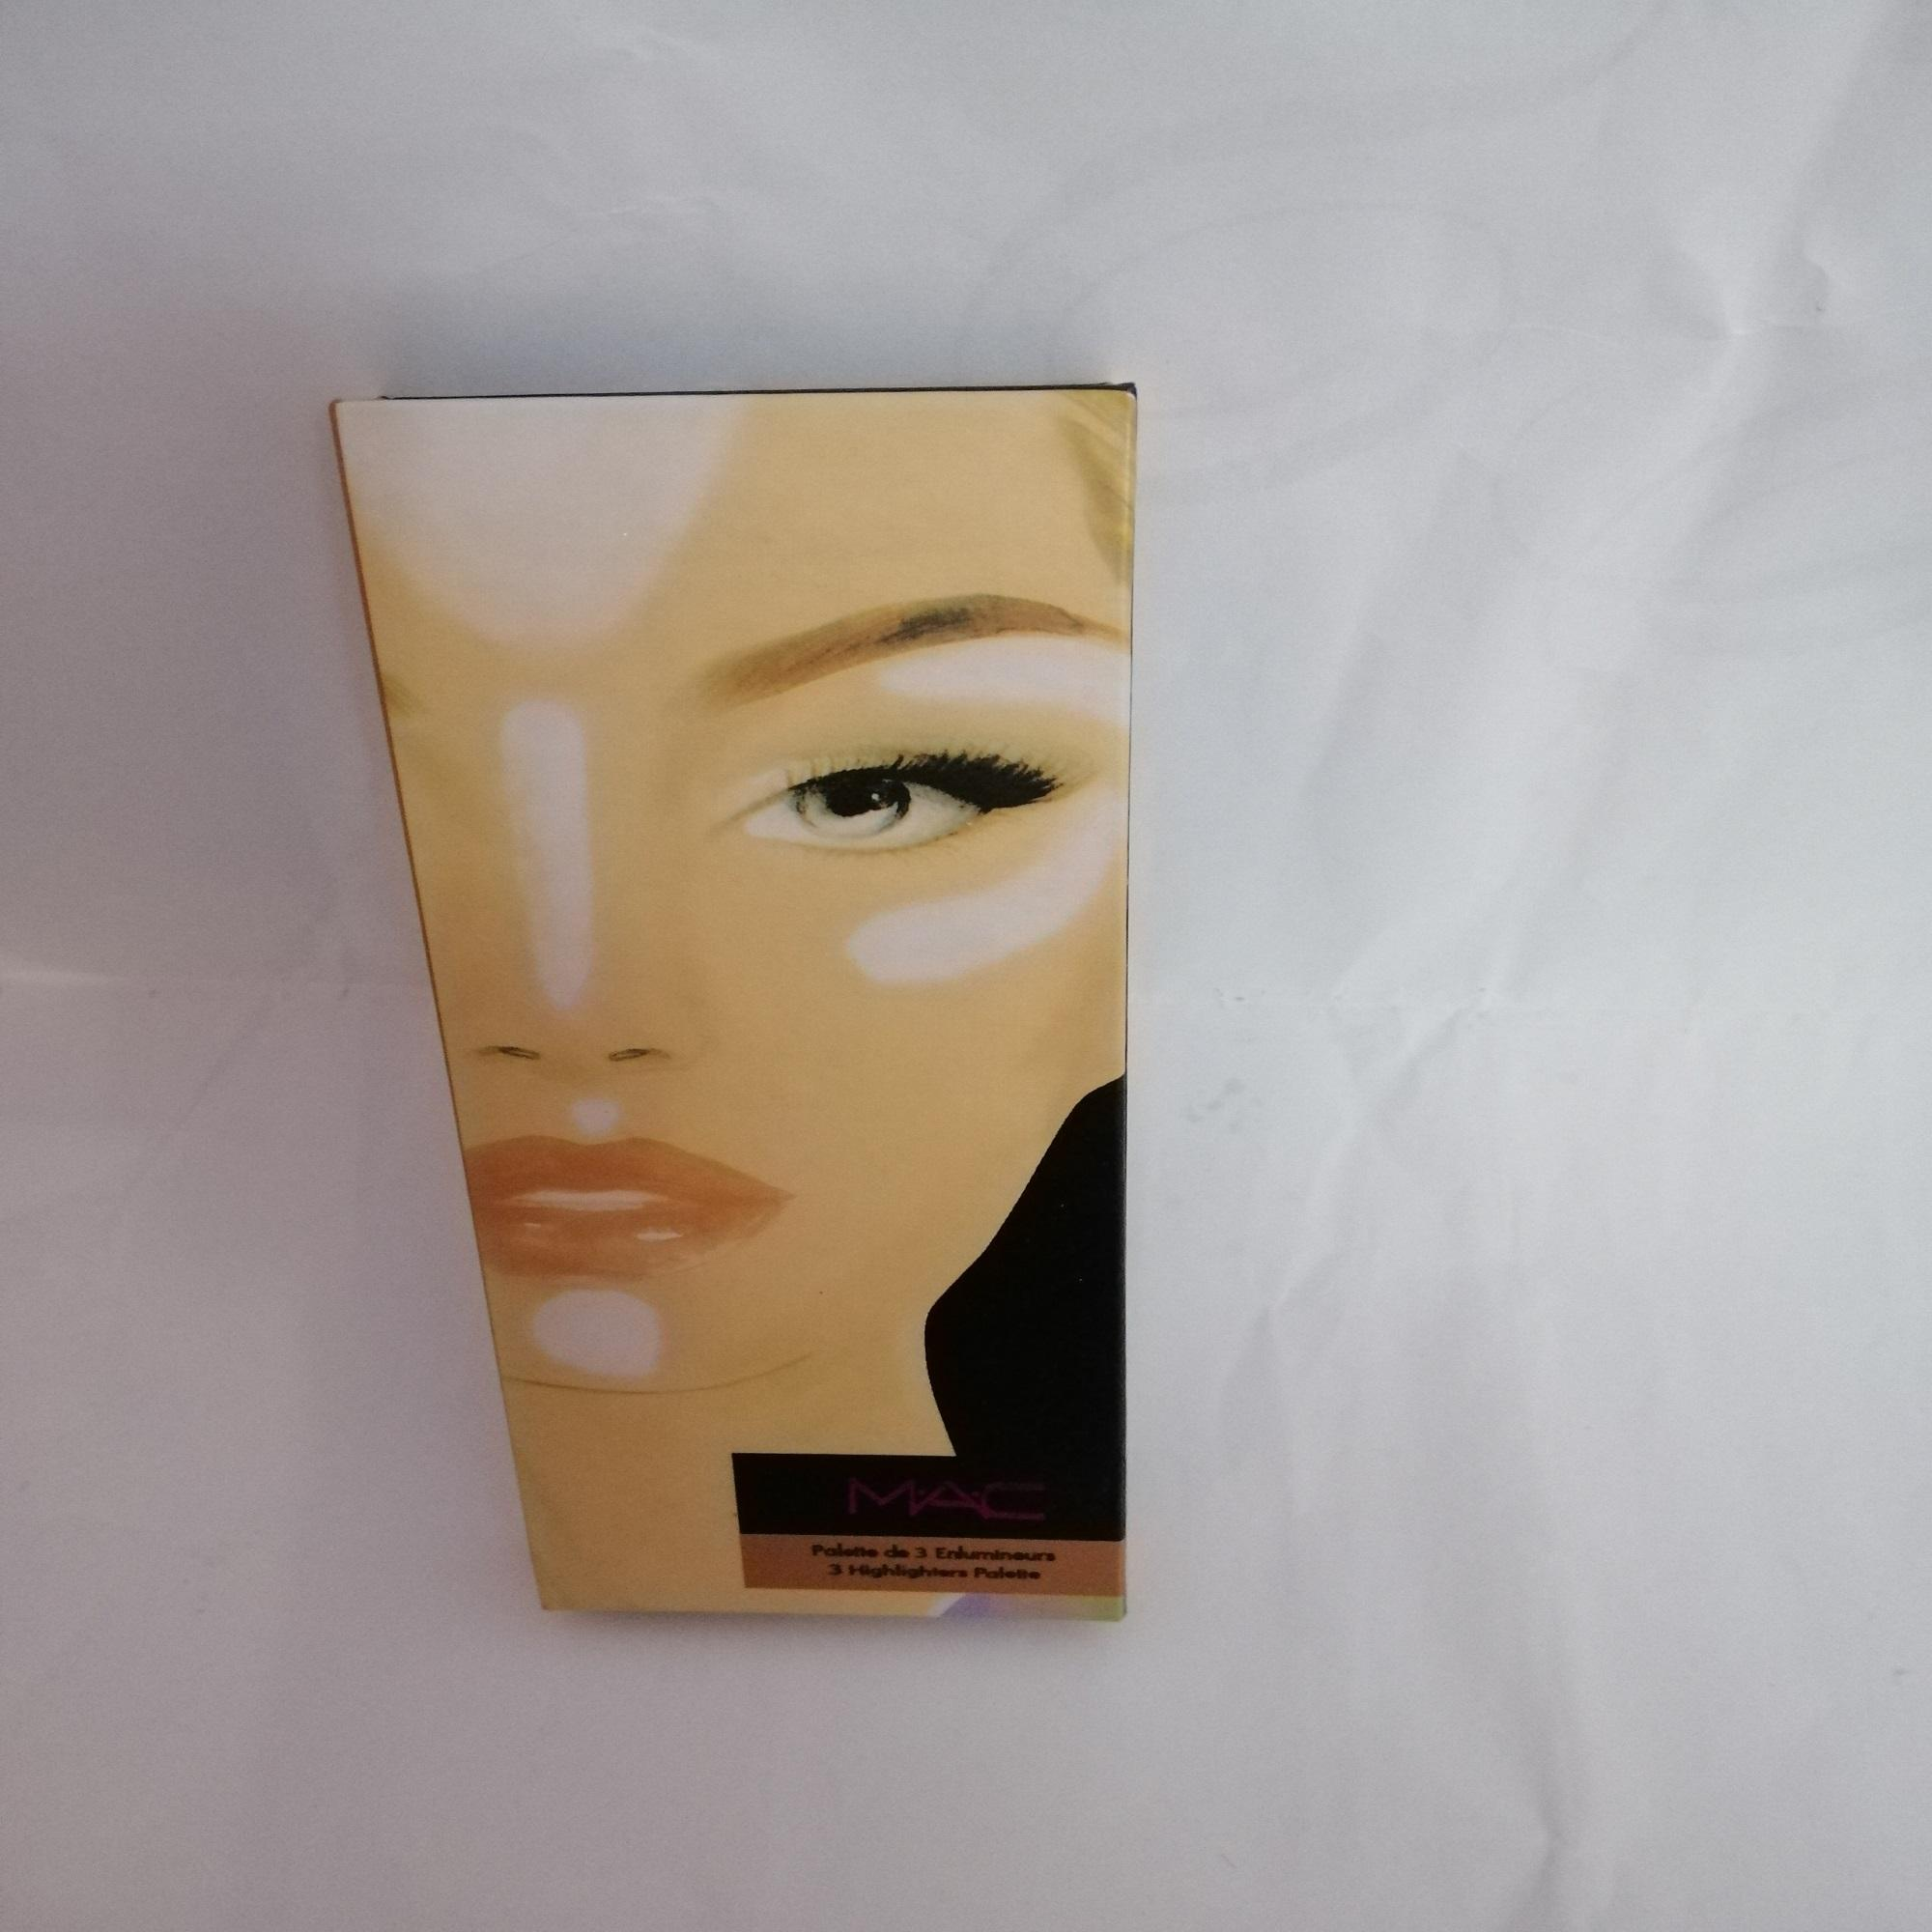 Buy Chinese Manufacturer Makeup Palettes & Sets at Best